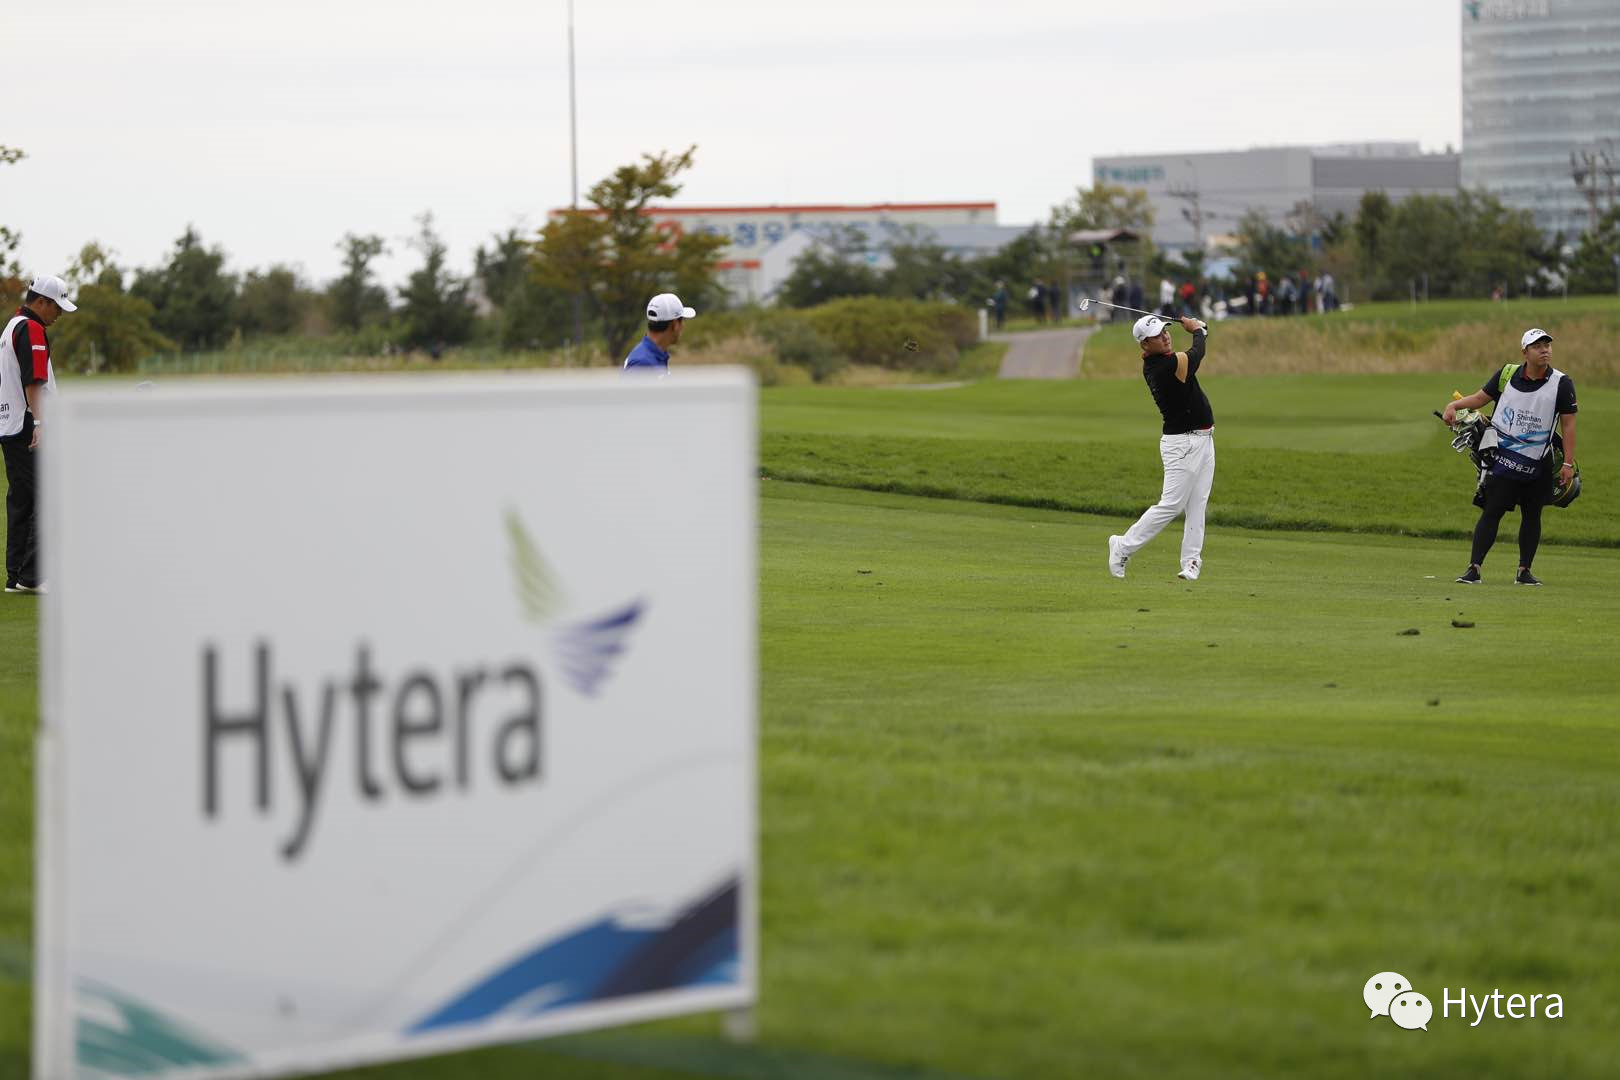 Hytera-PoC-Solution-Adopted-at-the-35th-Shinhan-Donghae-Golf-Open-1.jpg#asset:27501